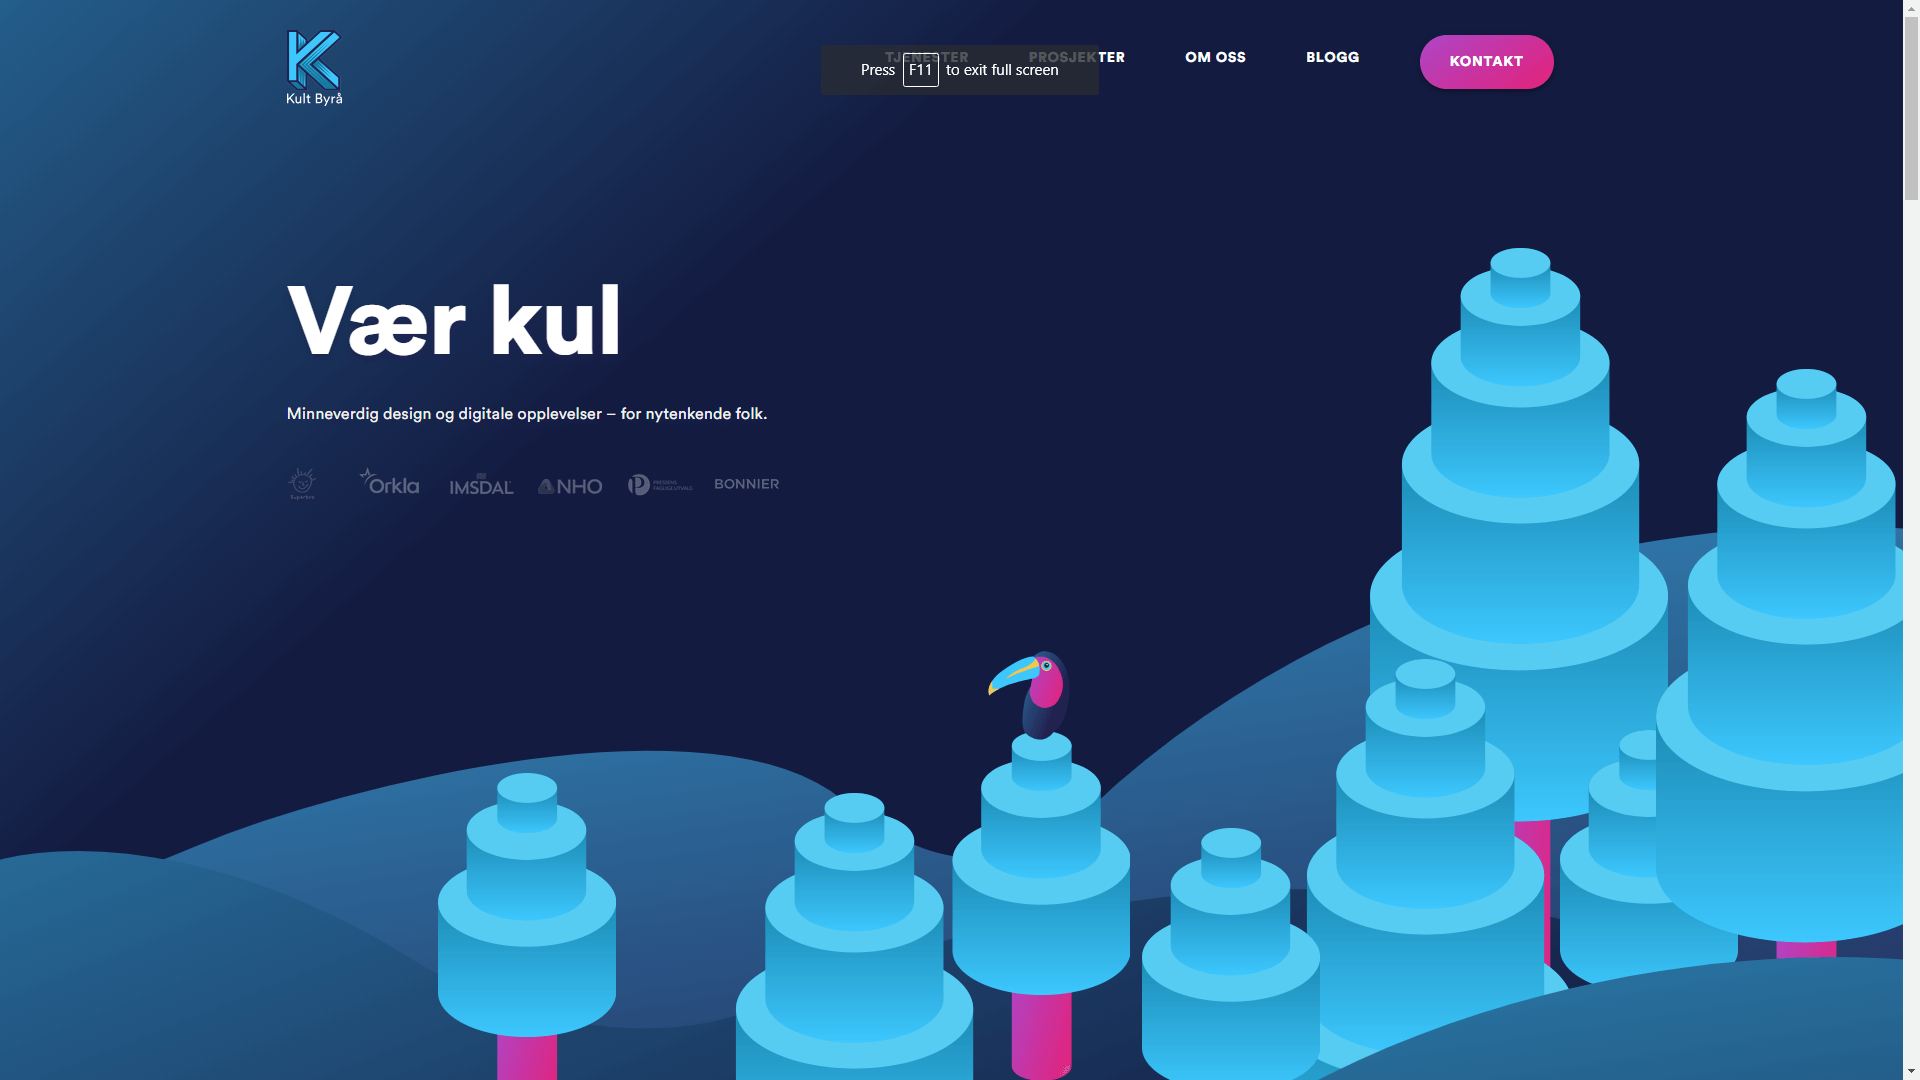 A website homepage with an interesting color scheme design.